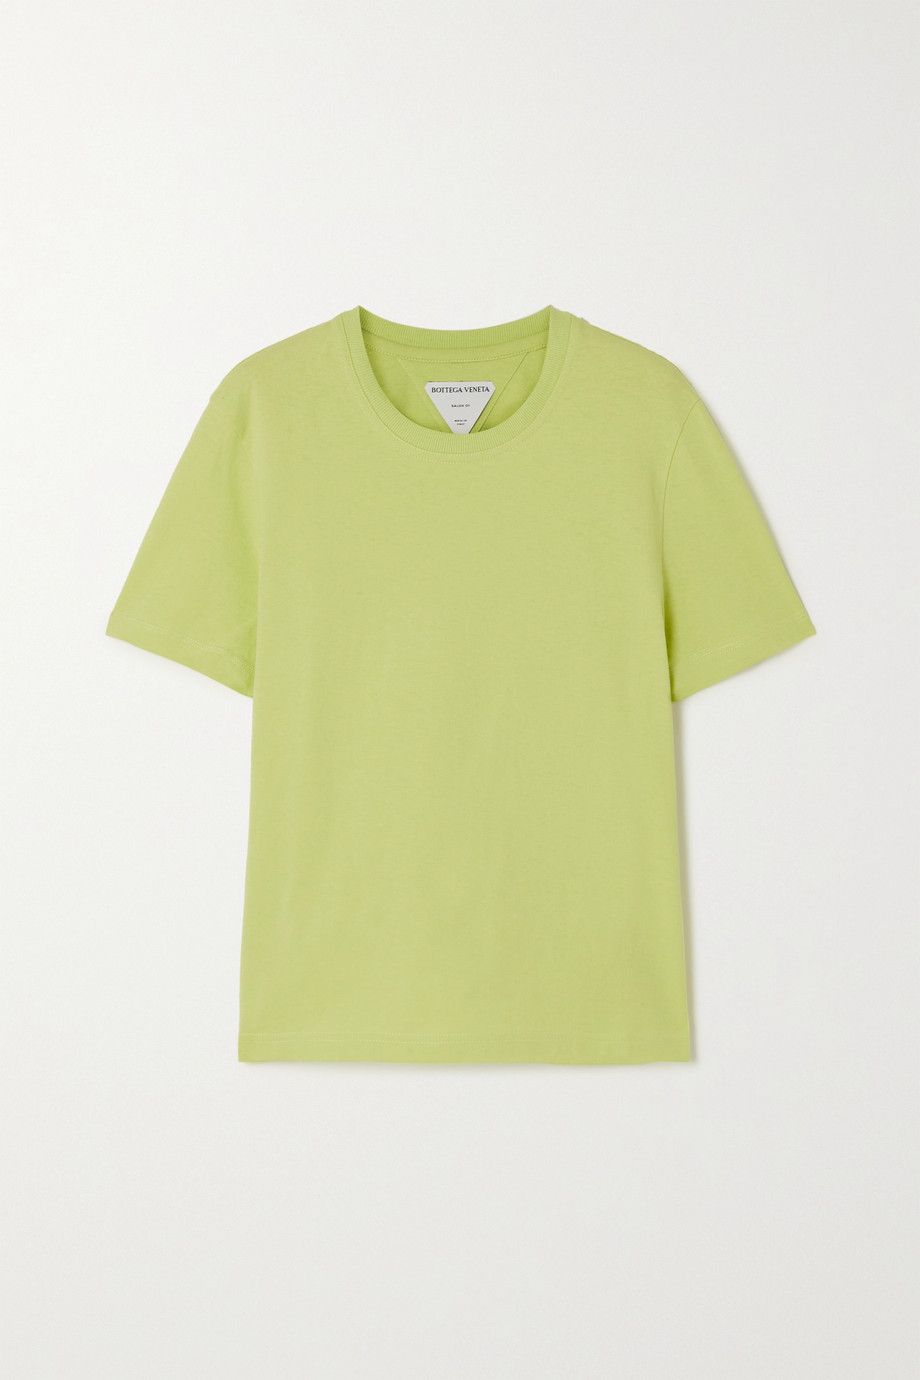 Bottega Veneta Washed cotton-jersey T-shirt